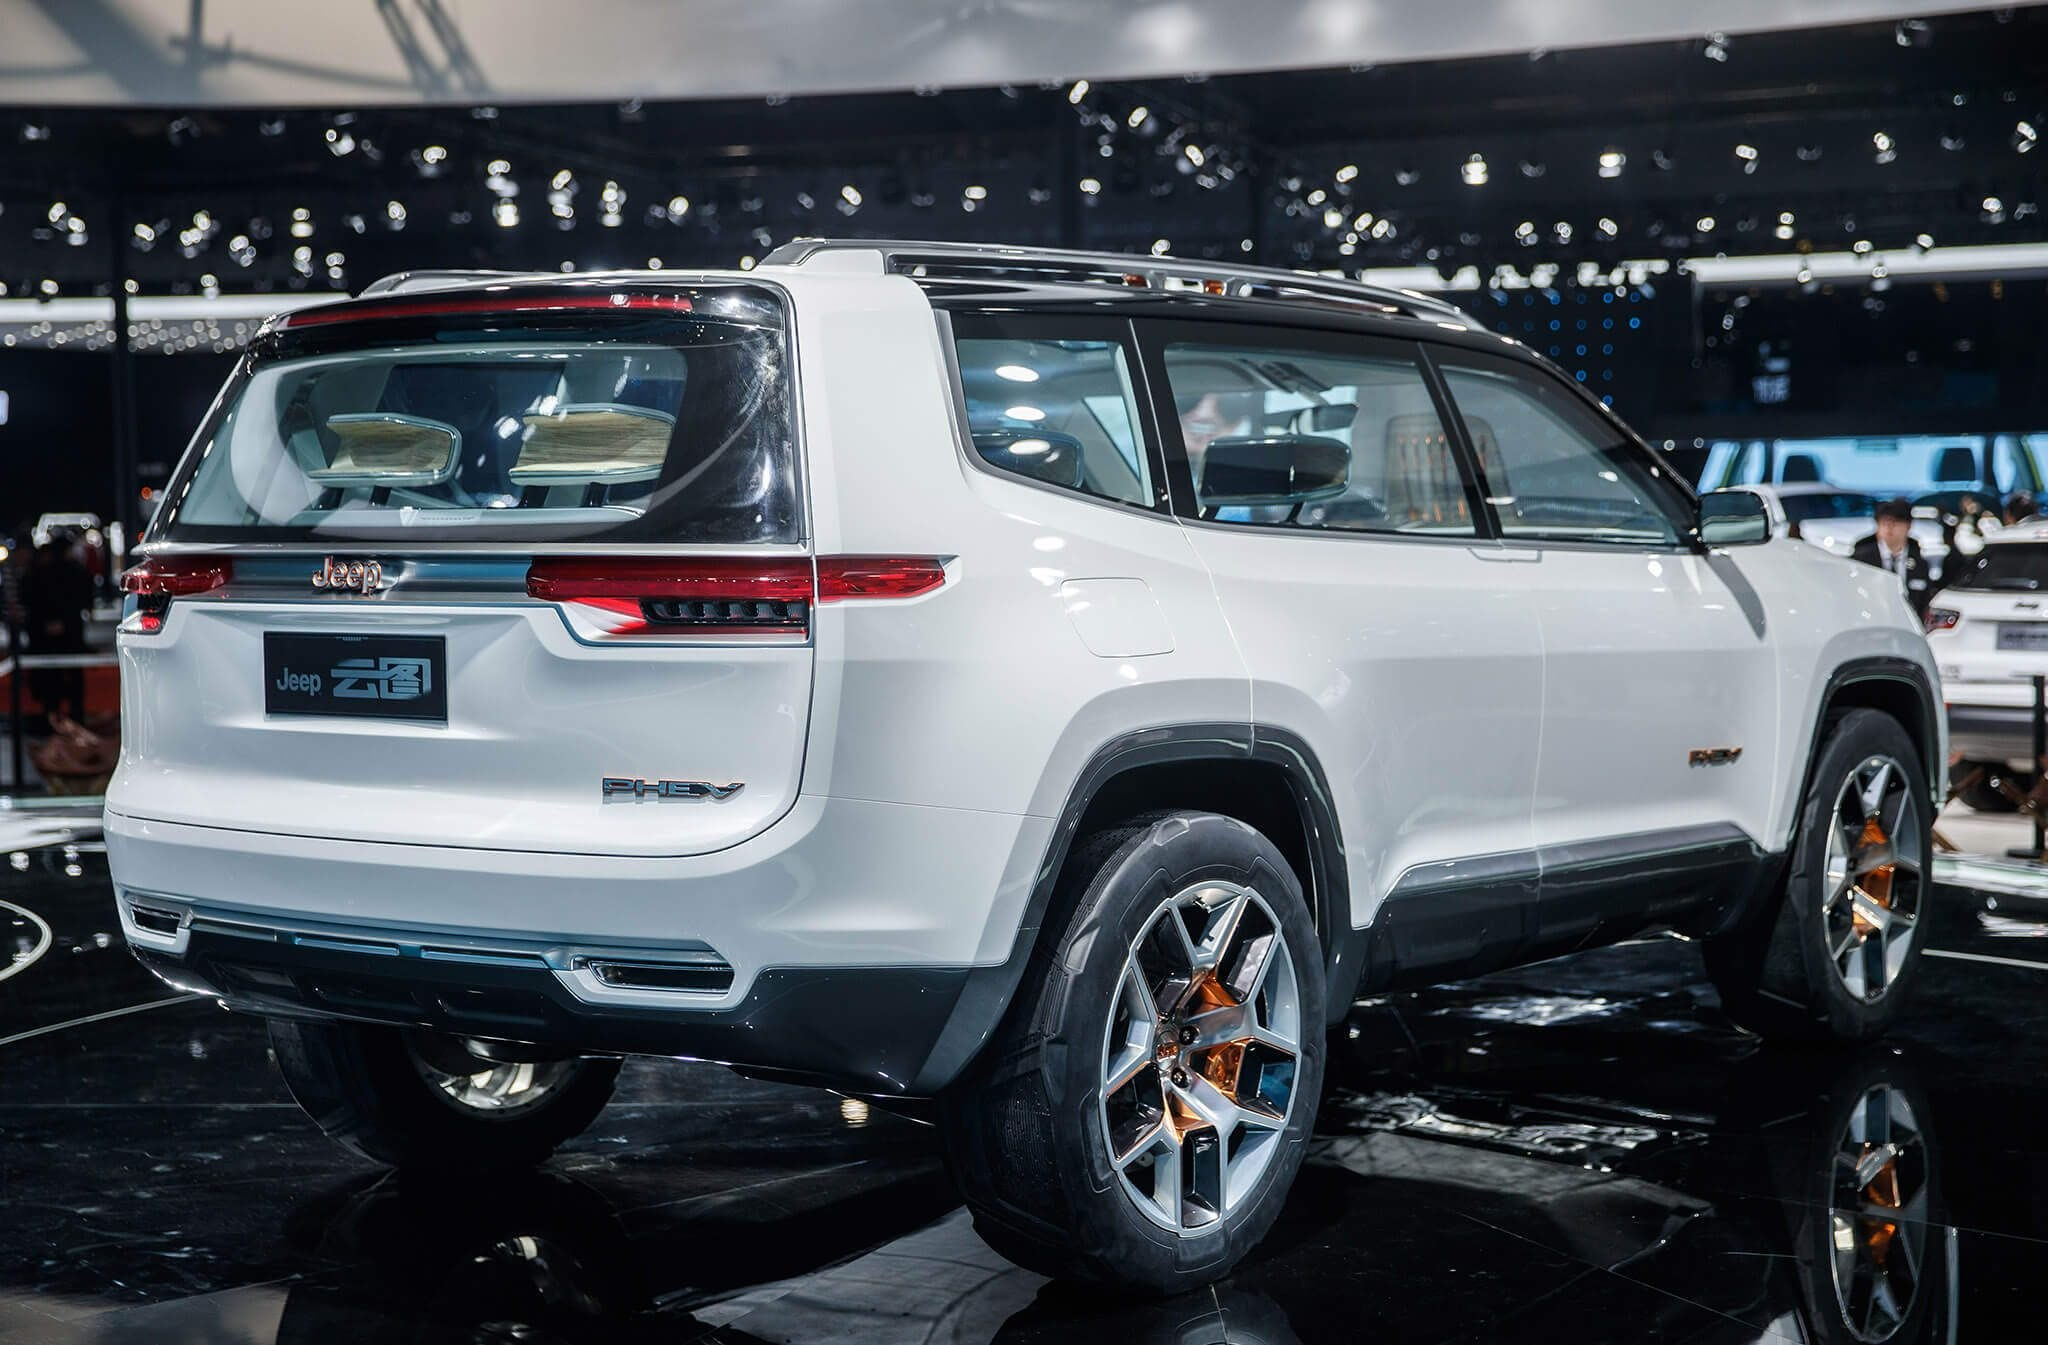 69 The Best 2020 Grand Cherokee Redesign and Review